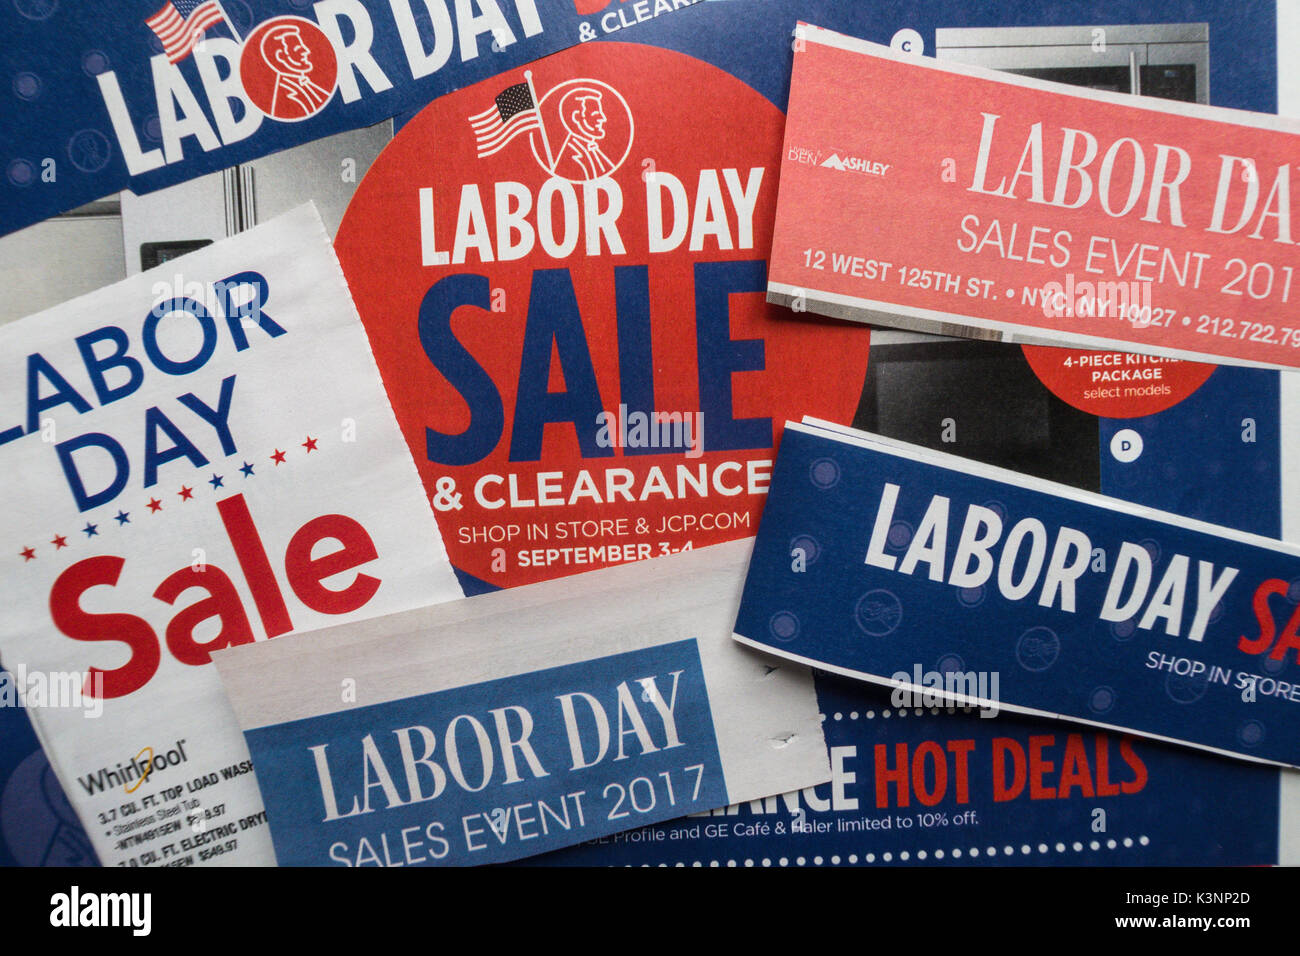 Labor Day Sale Advertisements, USA - Stock Image